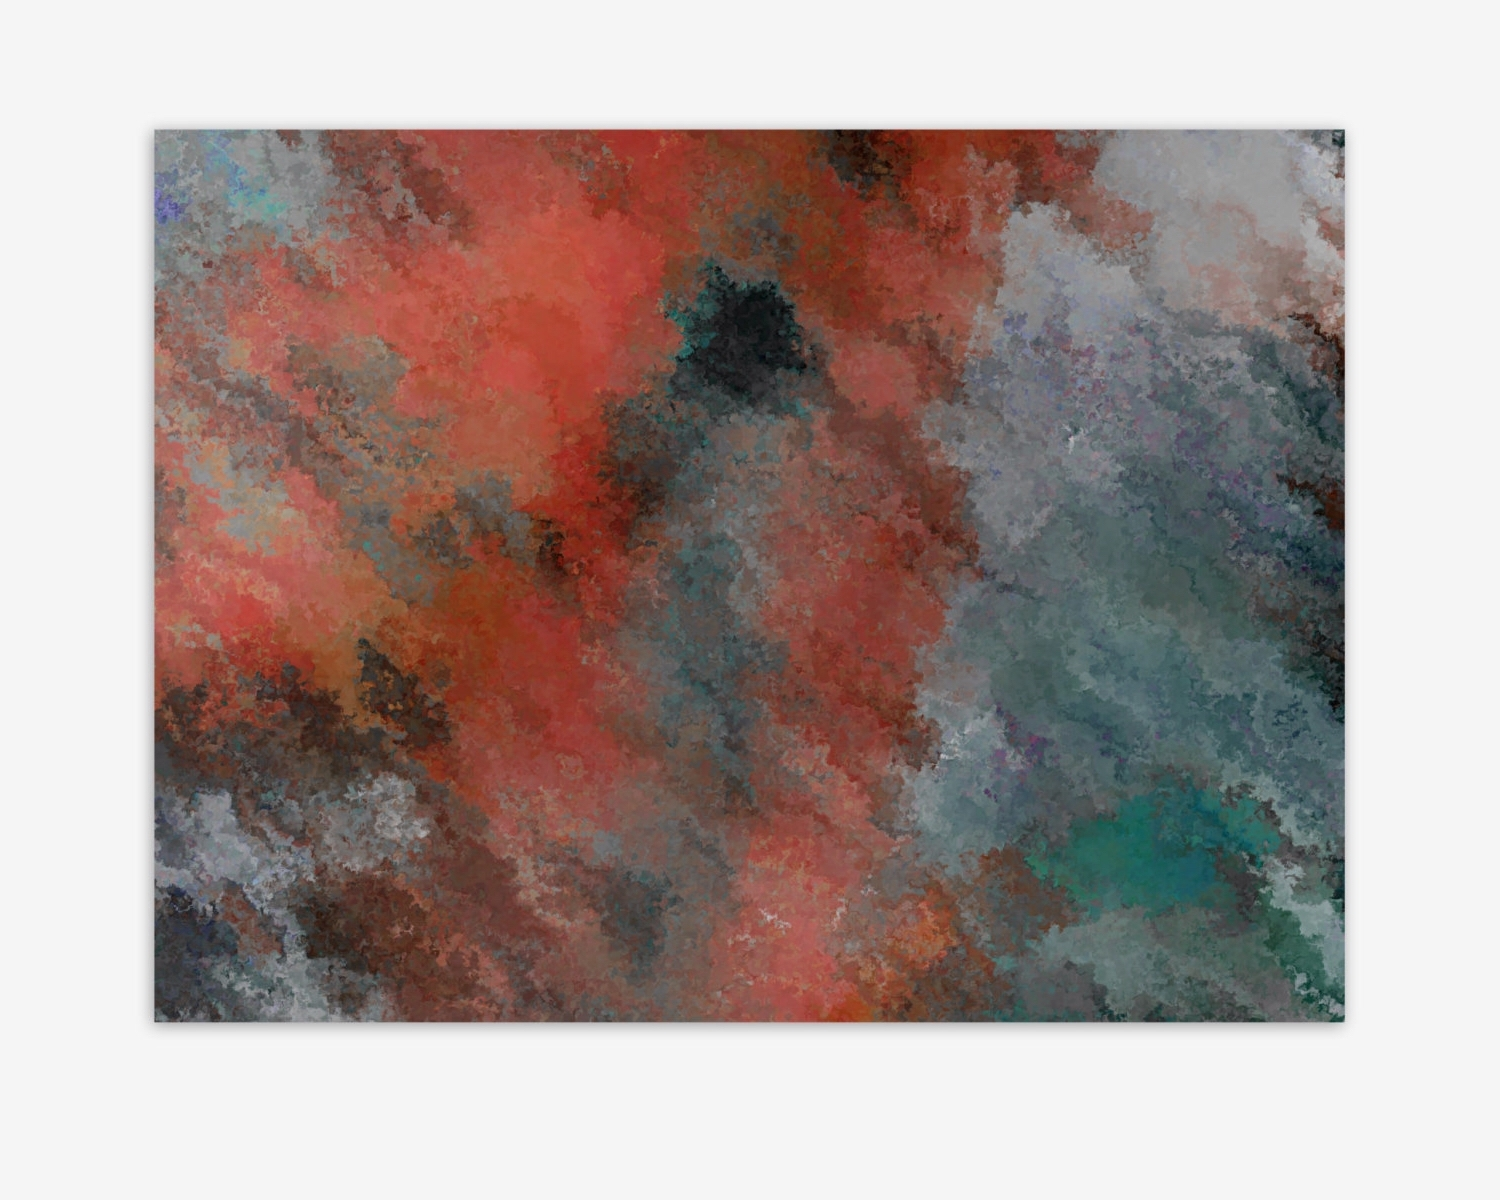 Hobby Lobby Abstract Wall Art For Most Recent Wall Art Canvas, Coral Teal Navy Rust Grey Wall Decor, Canvas (View 6 of 15)